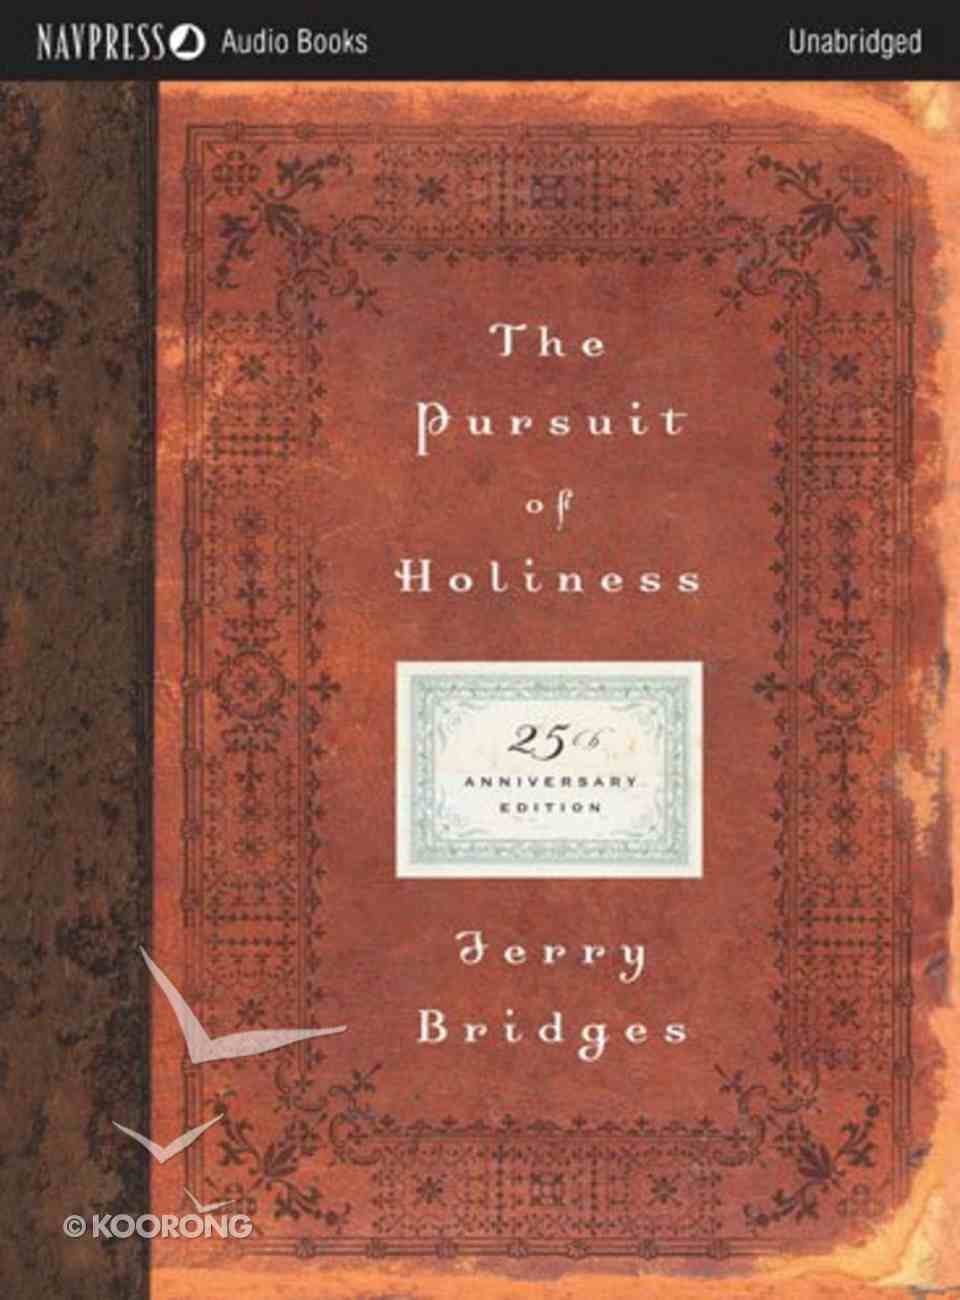 The Pursuit of Holiness (25th Anniversary Edition) CD